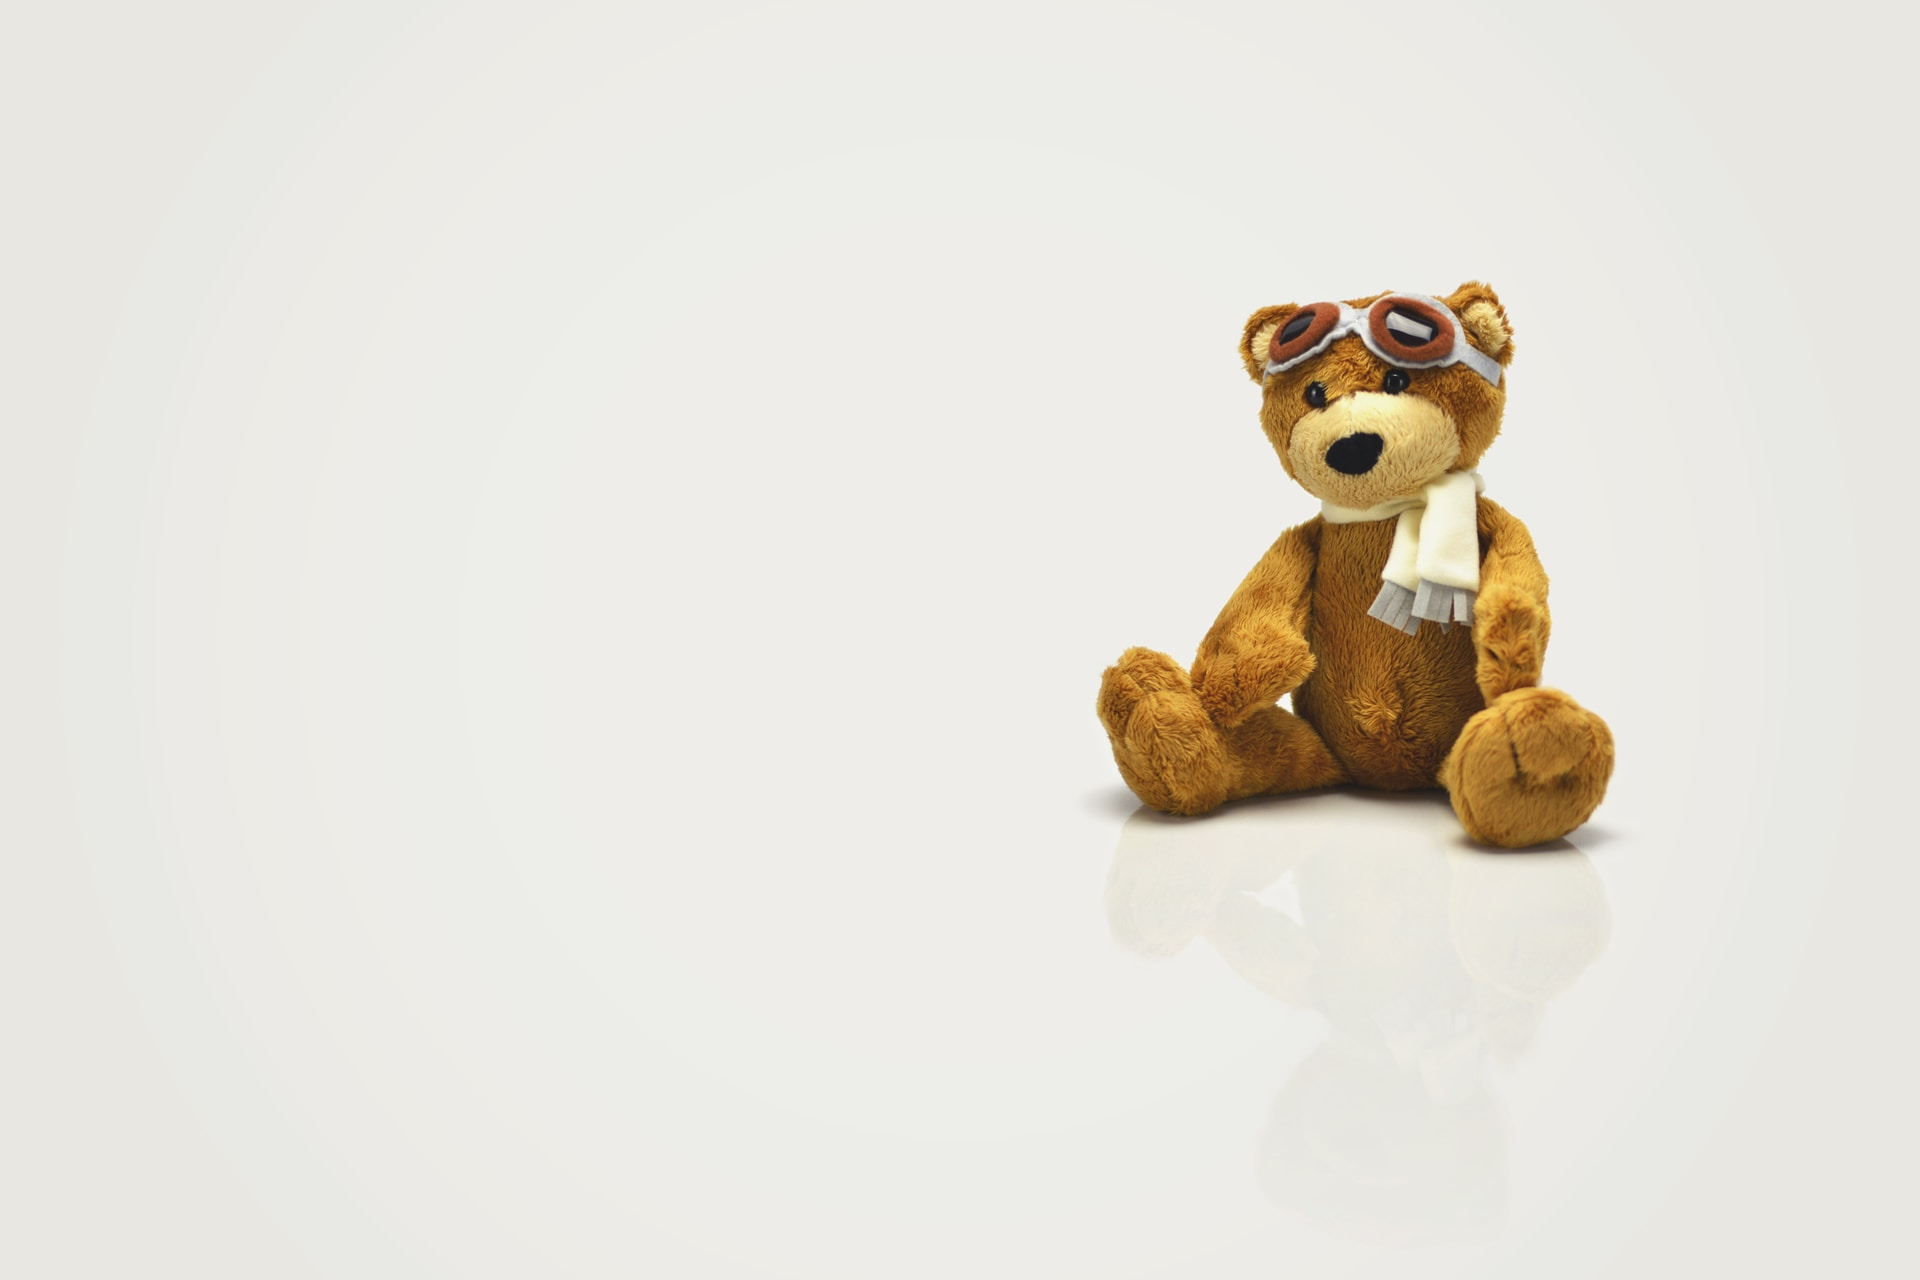 brown bear plush toy on white surface